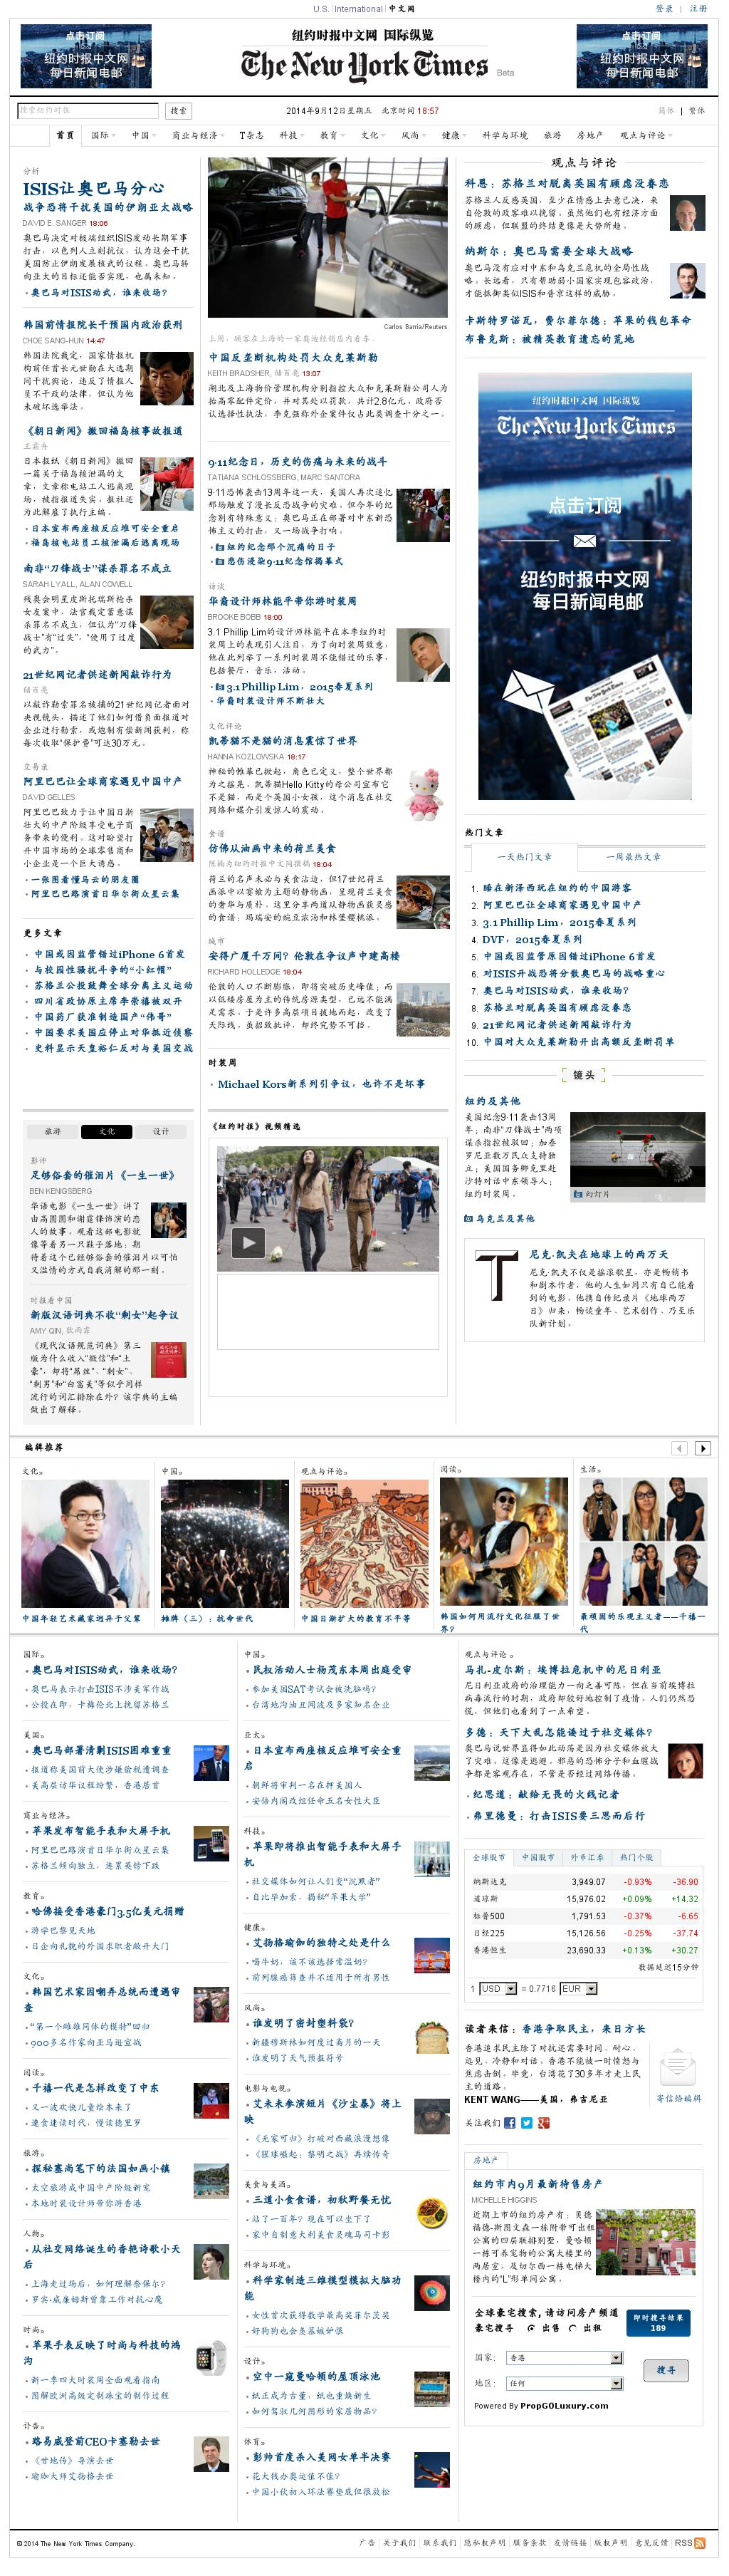 The New York Times (Chinese) at Saturday Sept. 13, 2014, 5:11 a.m. UTC